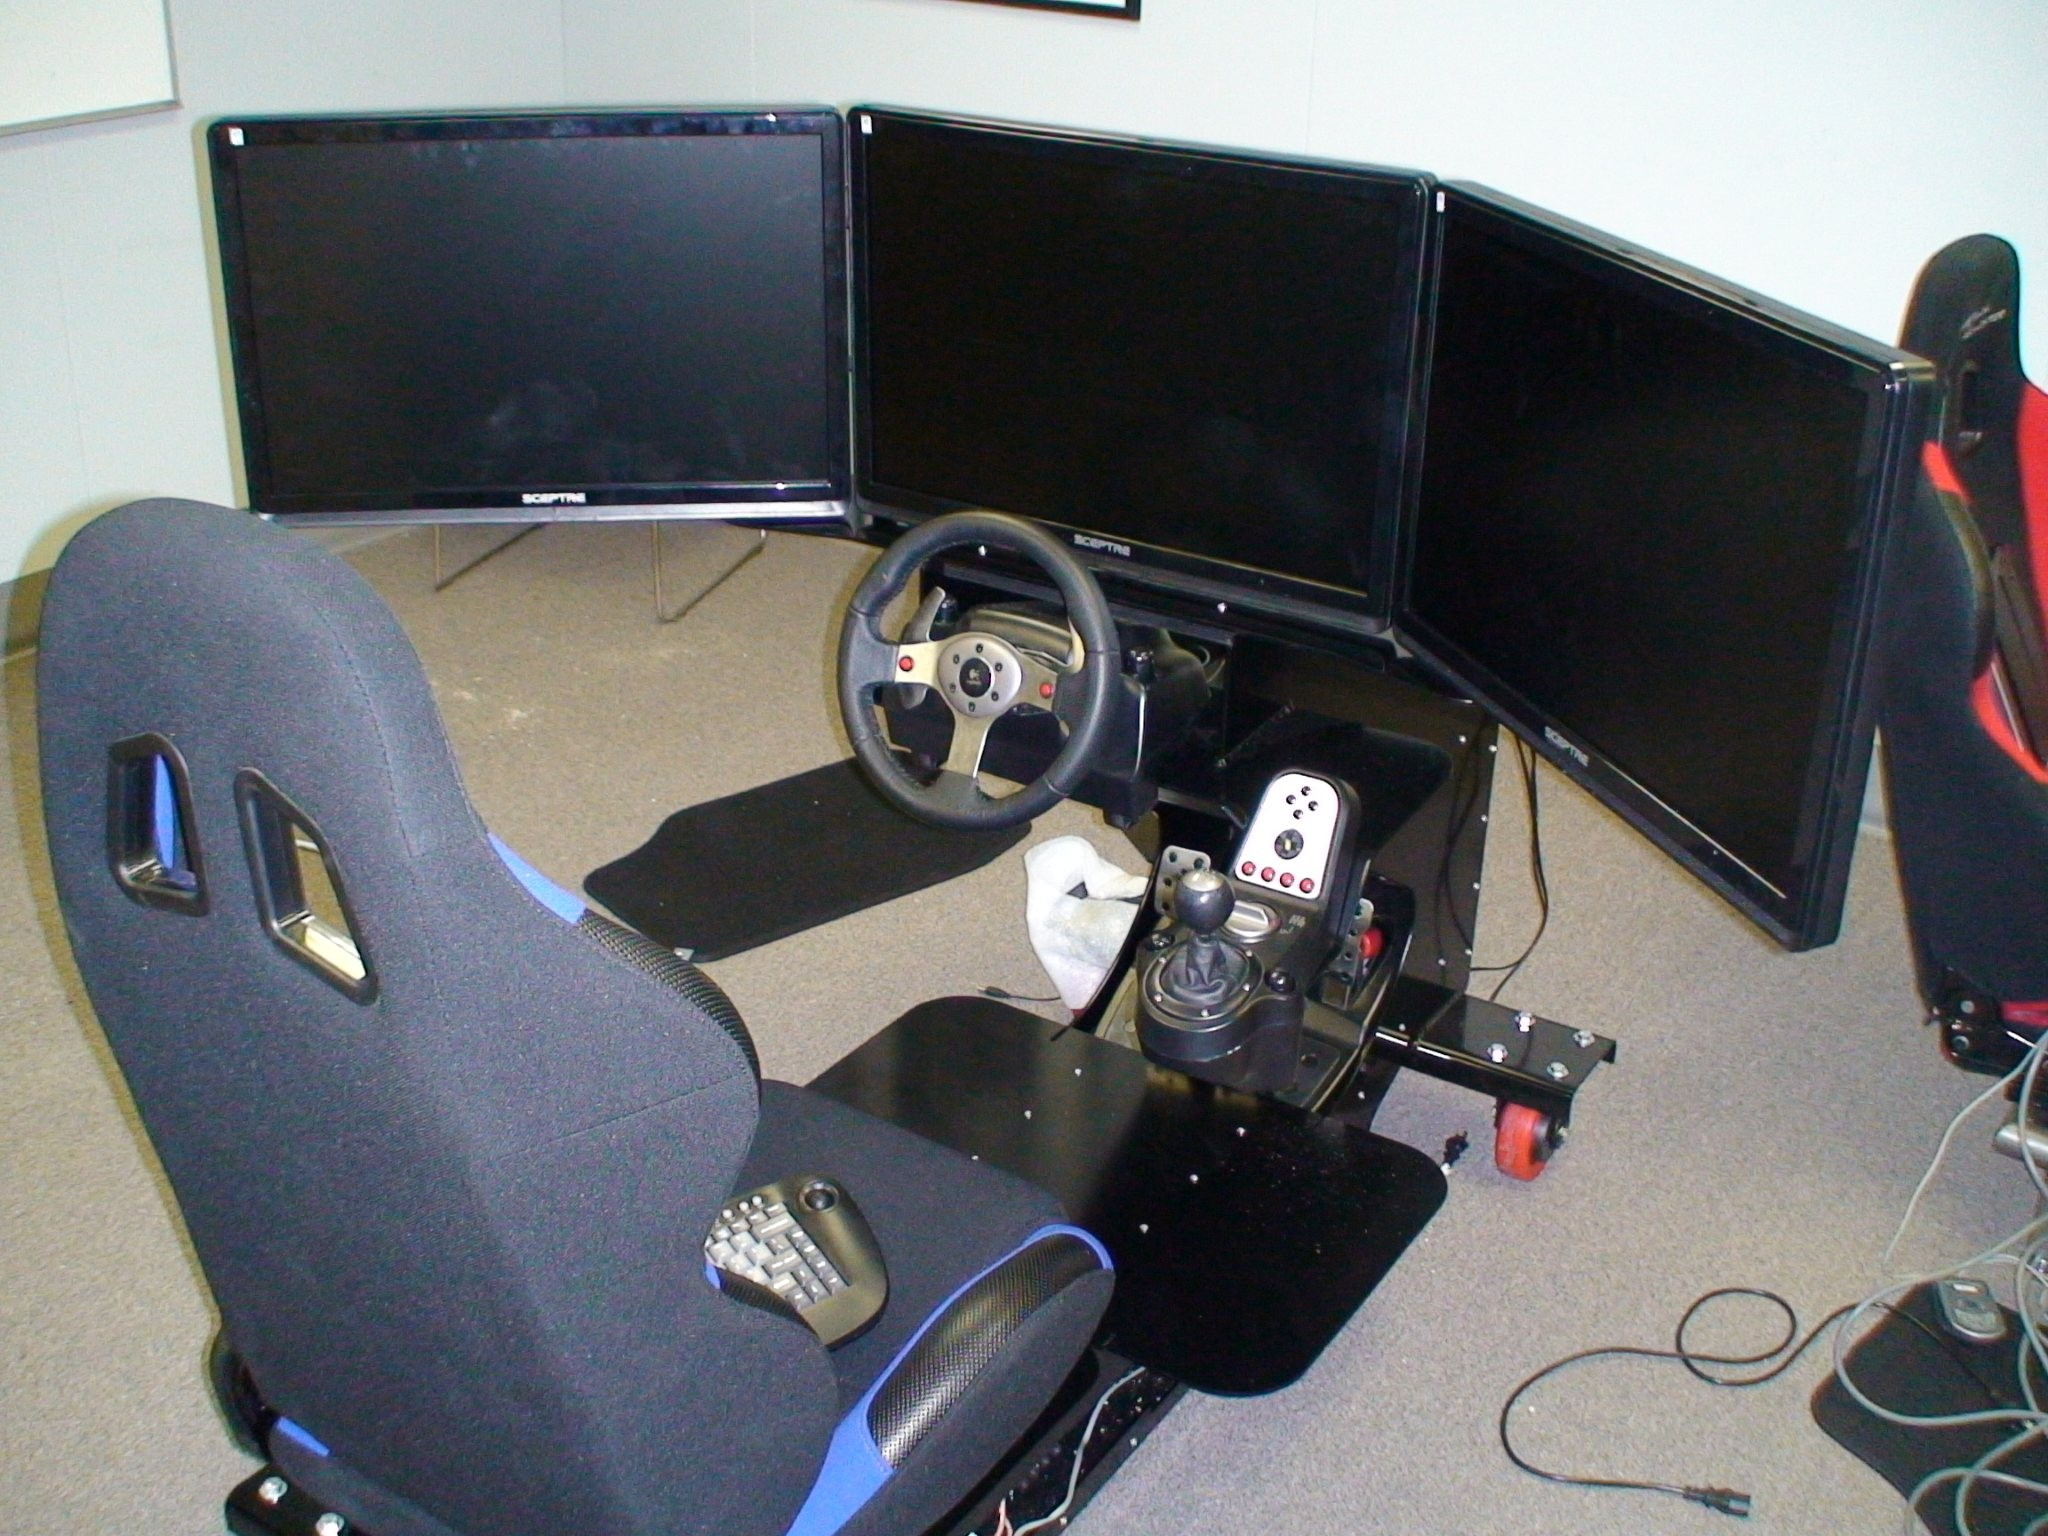 Complete iRacing sim - $4000 buget, you design it - Getting